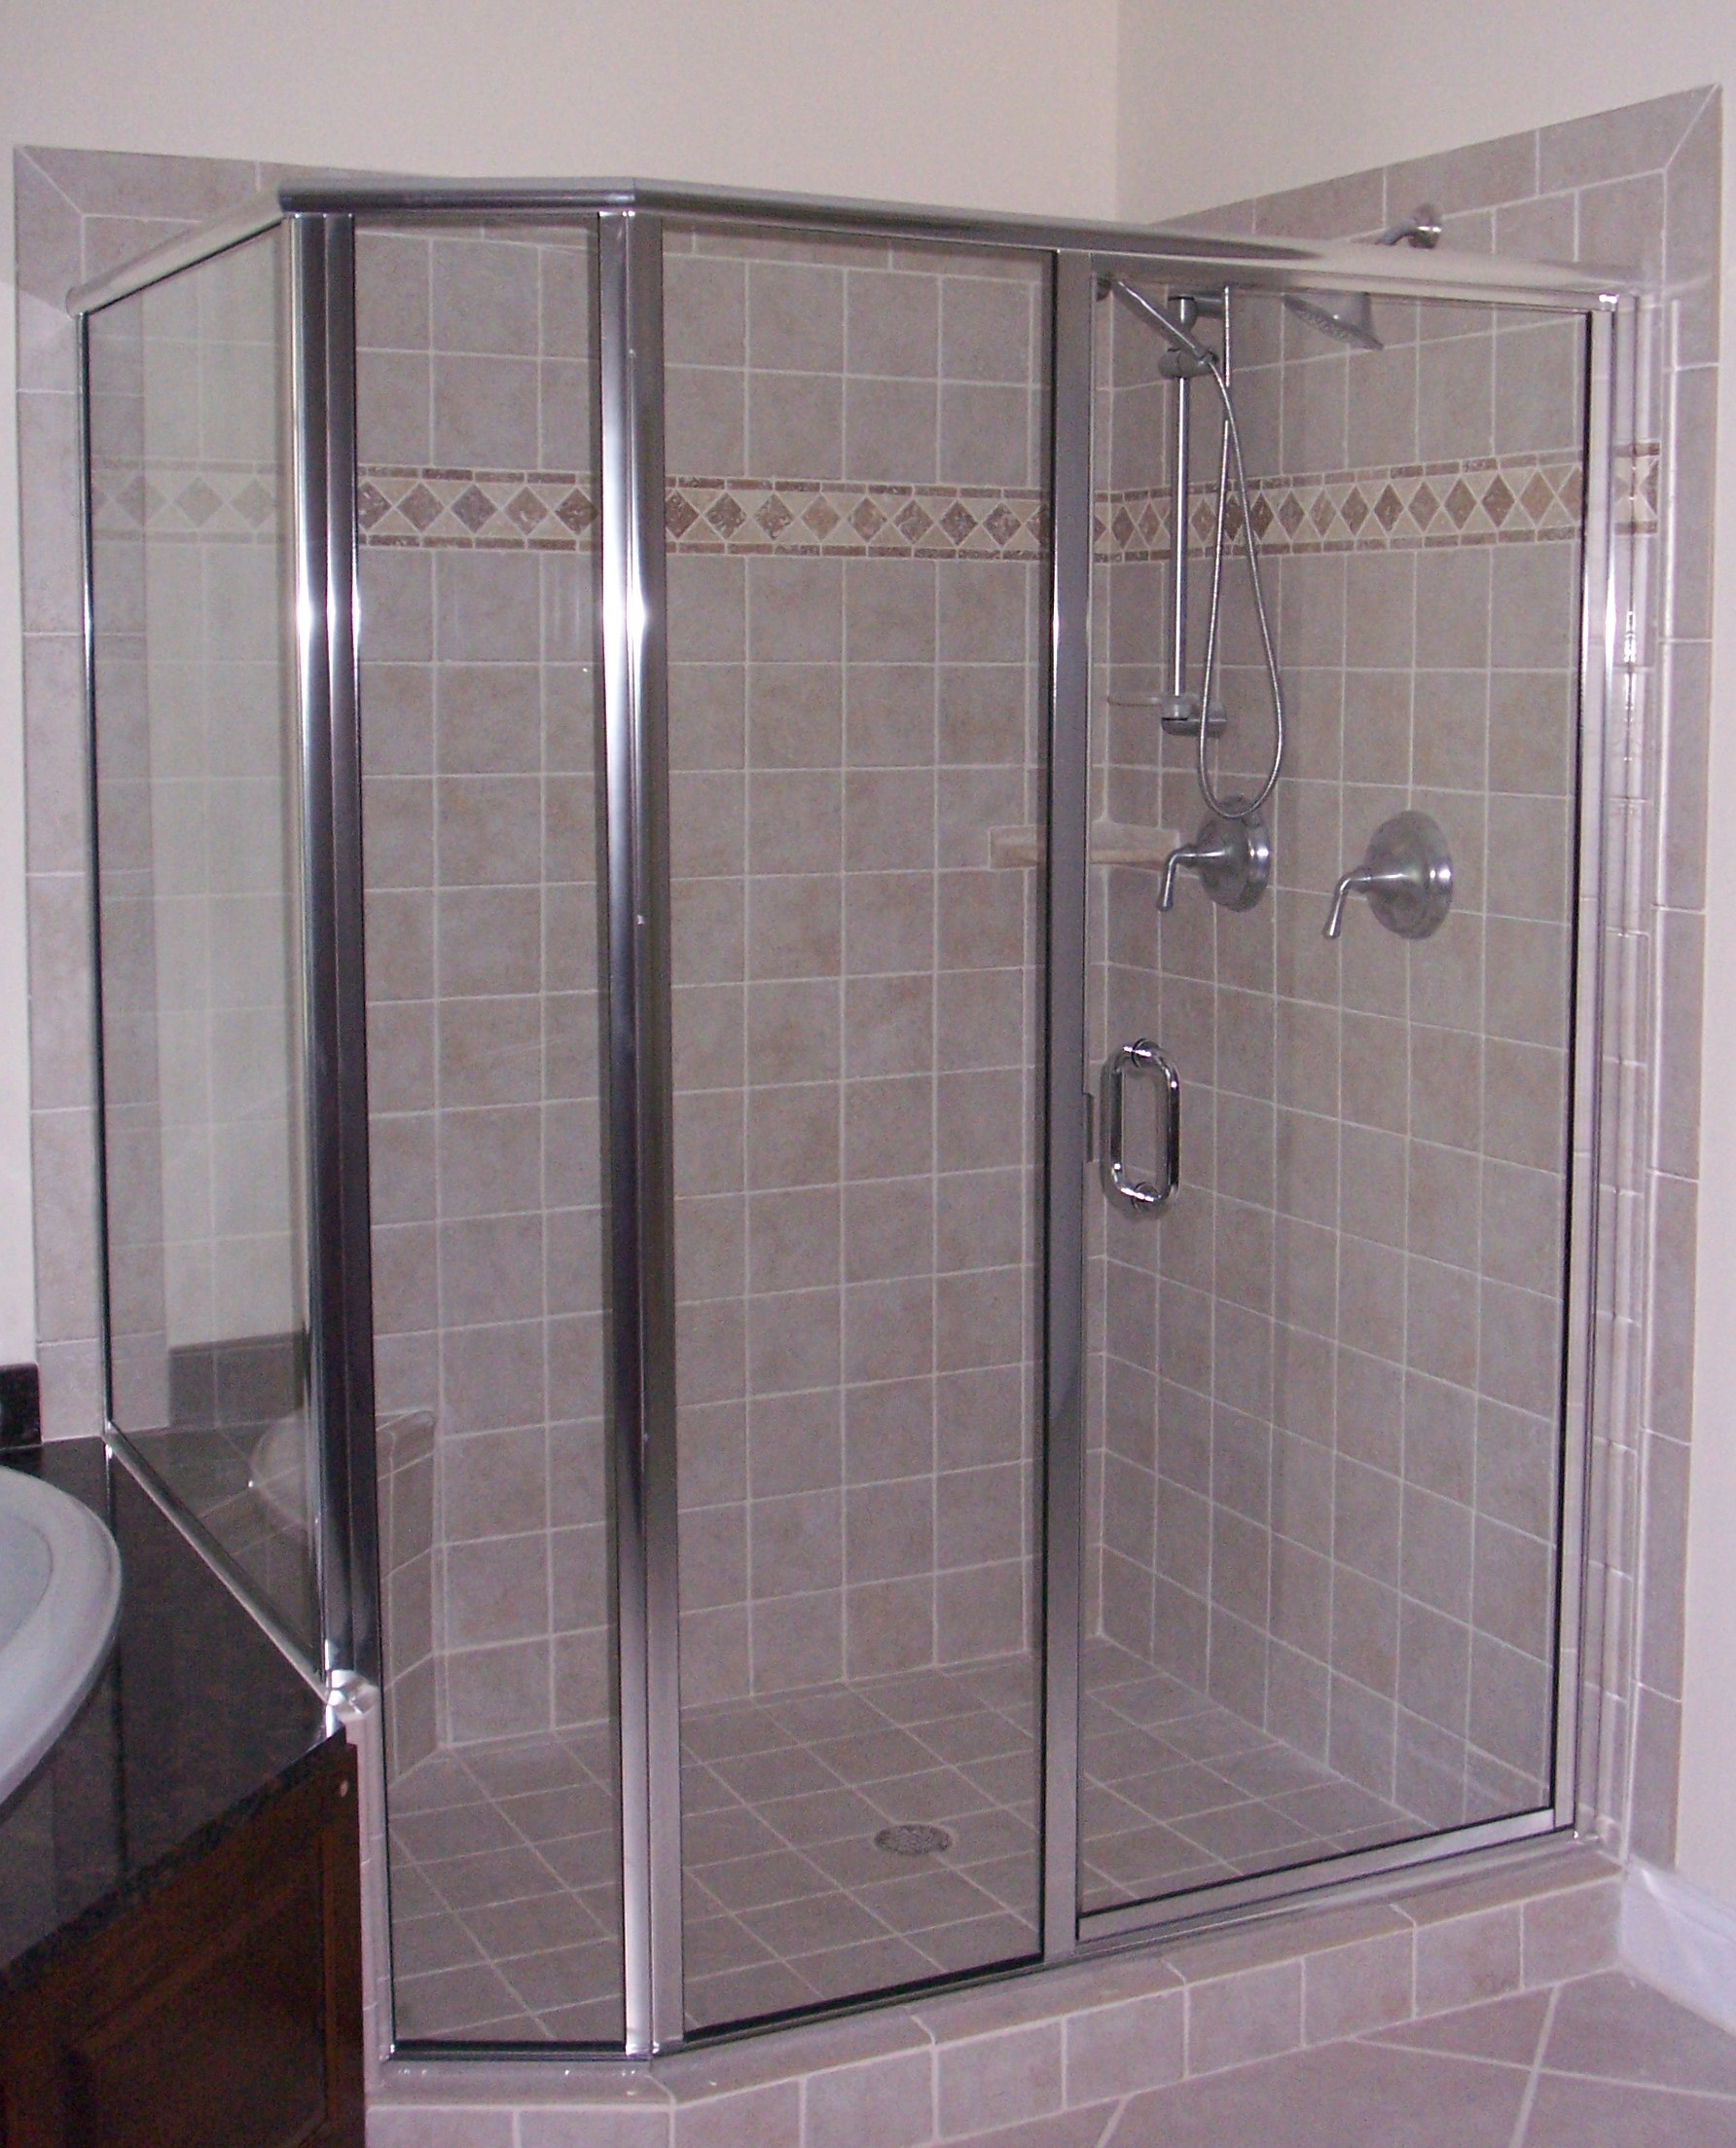 Semi Framed Glass Shower Door Strattonsociety with regard to sizing 1784 X 2207